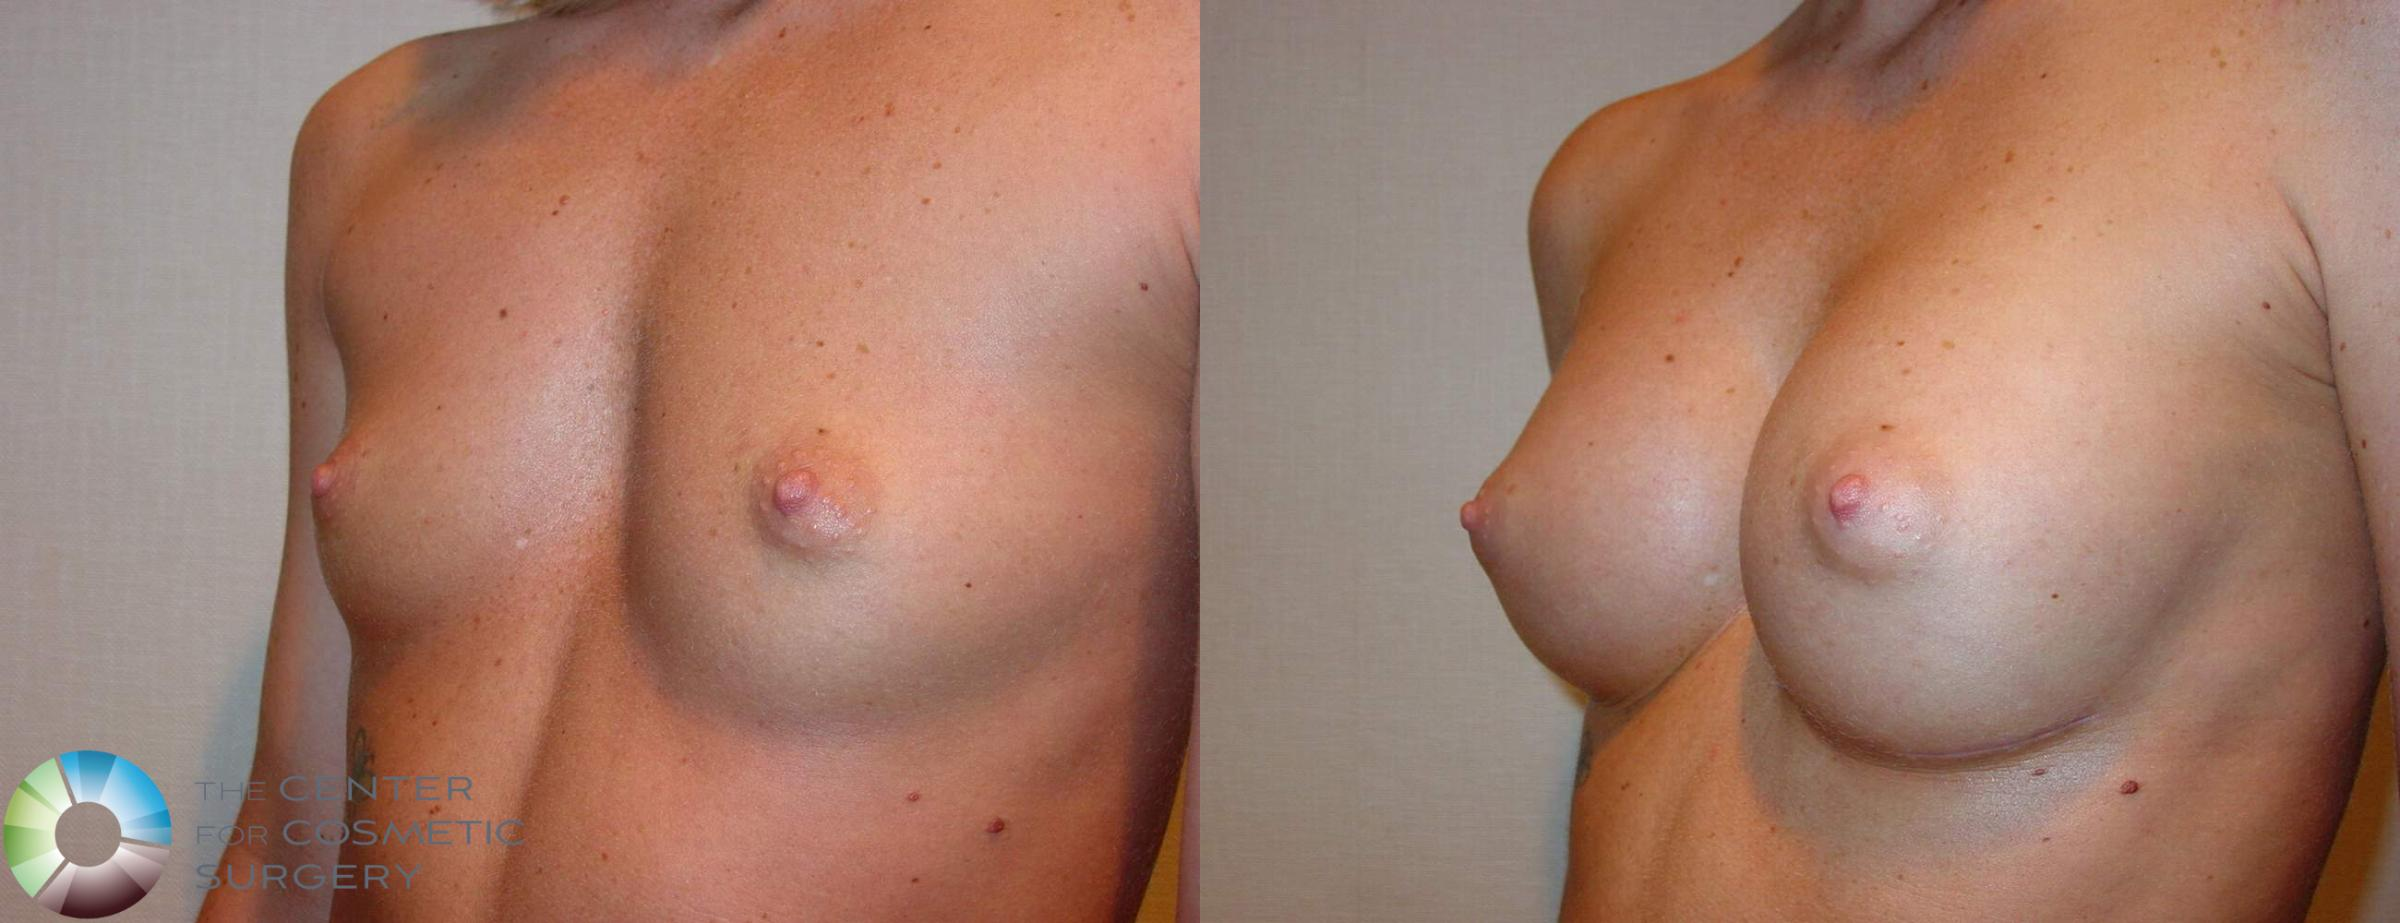 Breast Augmentation Case 512 Before & After View #2 | Golden, CO | The Center for Cosmetic Surgery